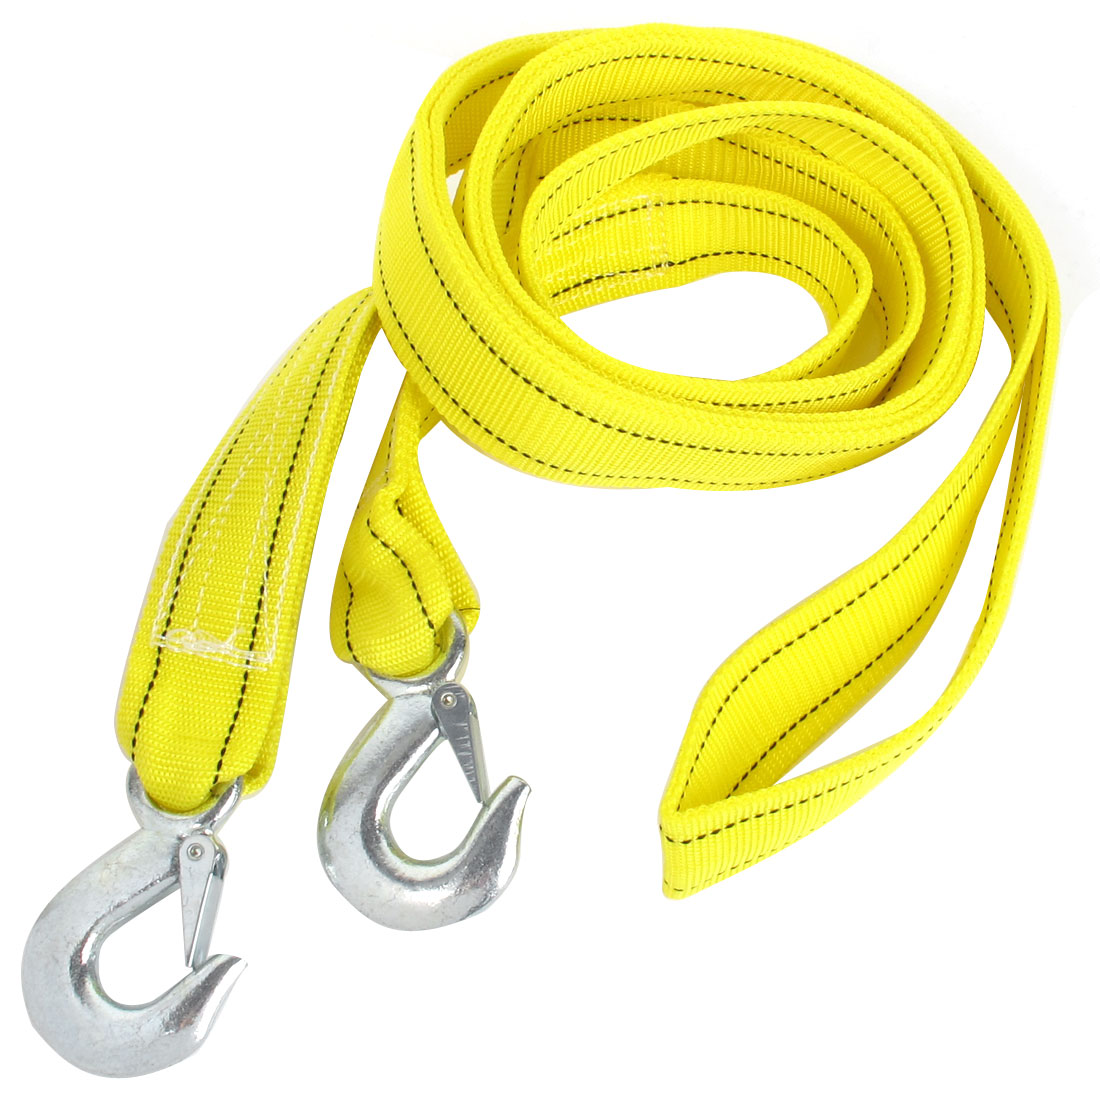 Truck Yellow Nylon 5 Tons Capacity Emergency Nylon Towing Strap 5M